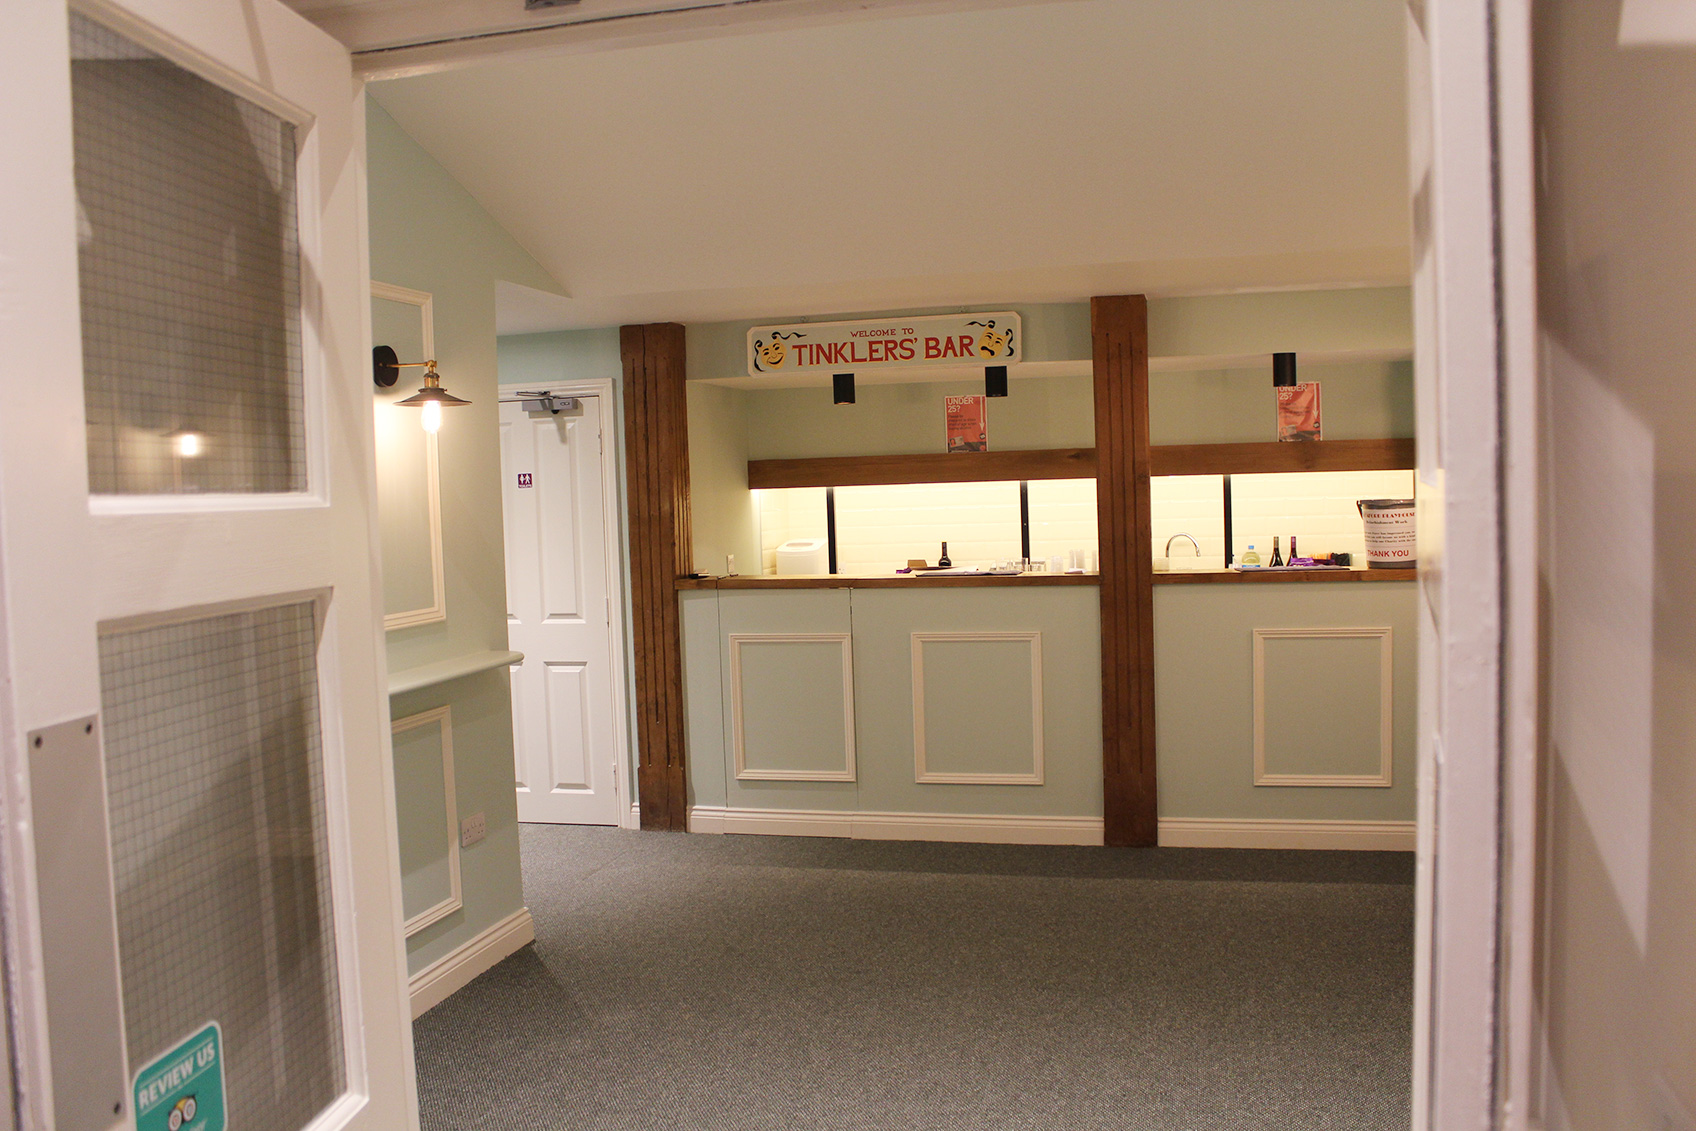 New foyer entrance at the Sleaford Playhouse